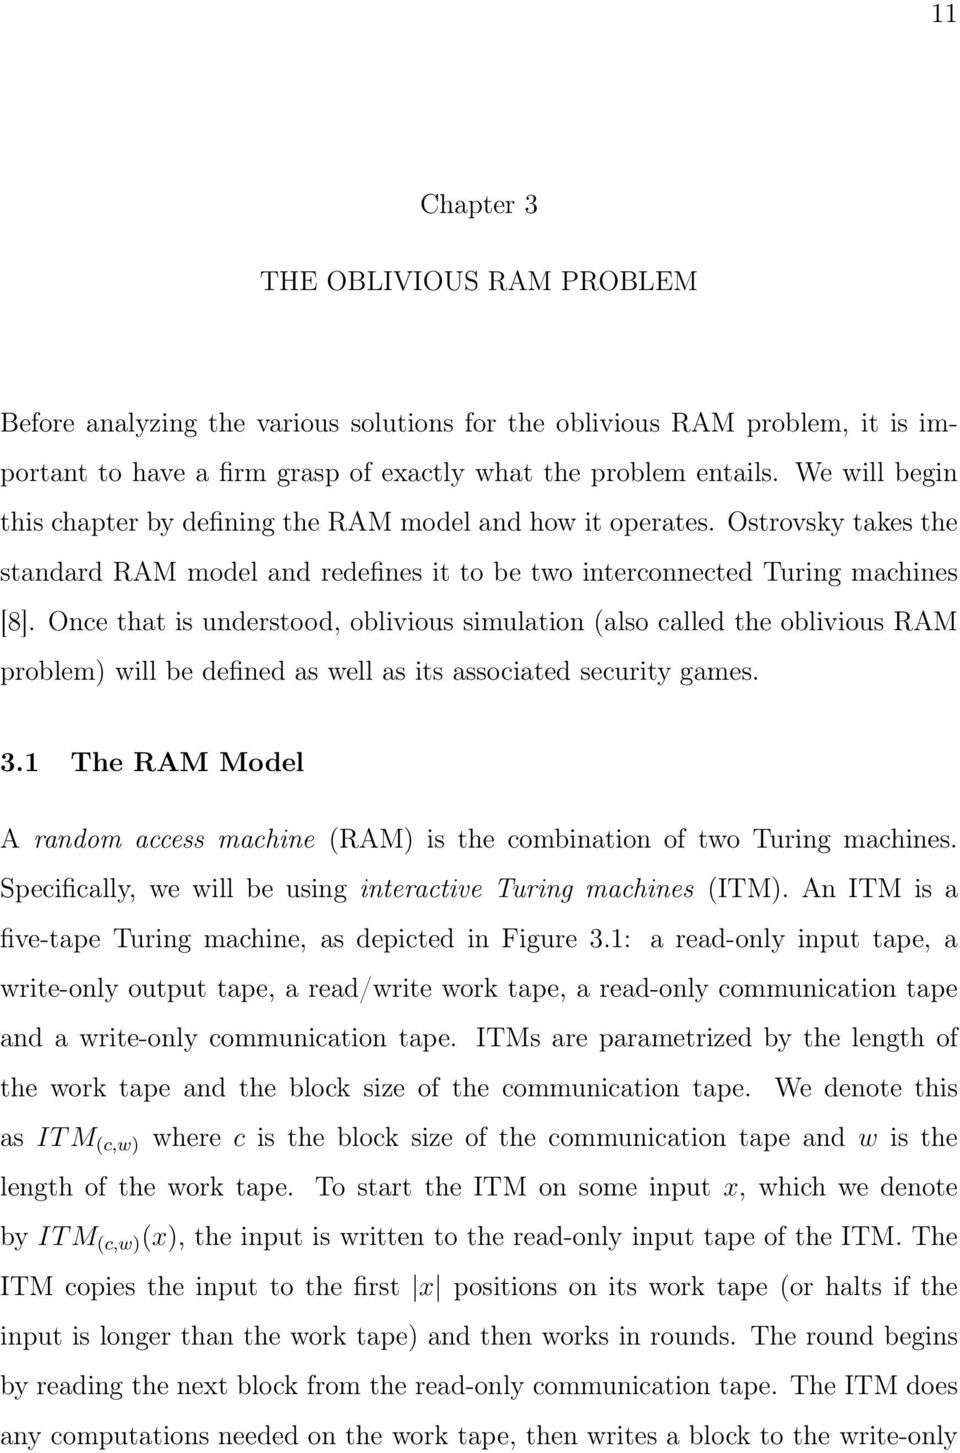 Once that is understood, oblivious simulation (also called the oblivious RAM problem) will be defined as well as its associated security games. 3.